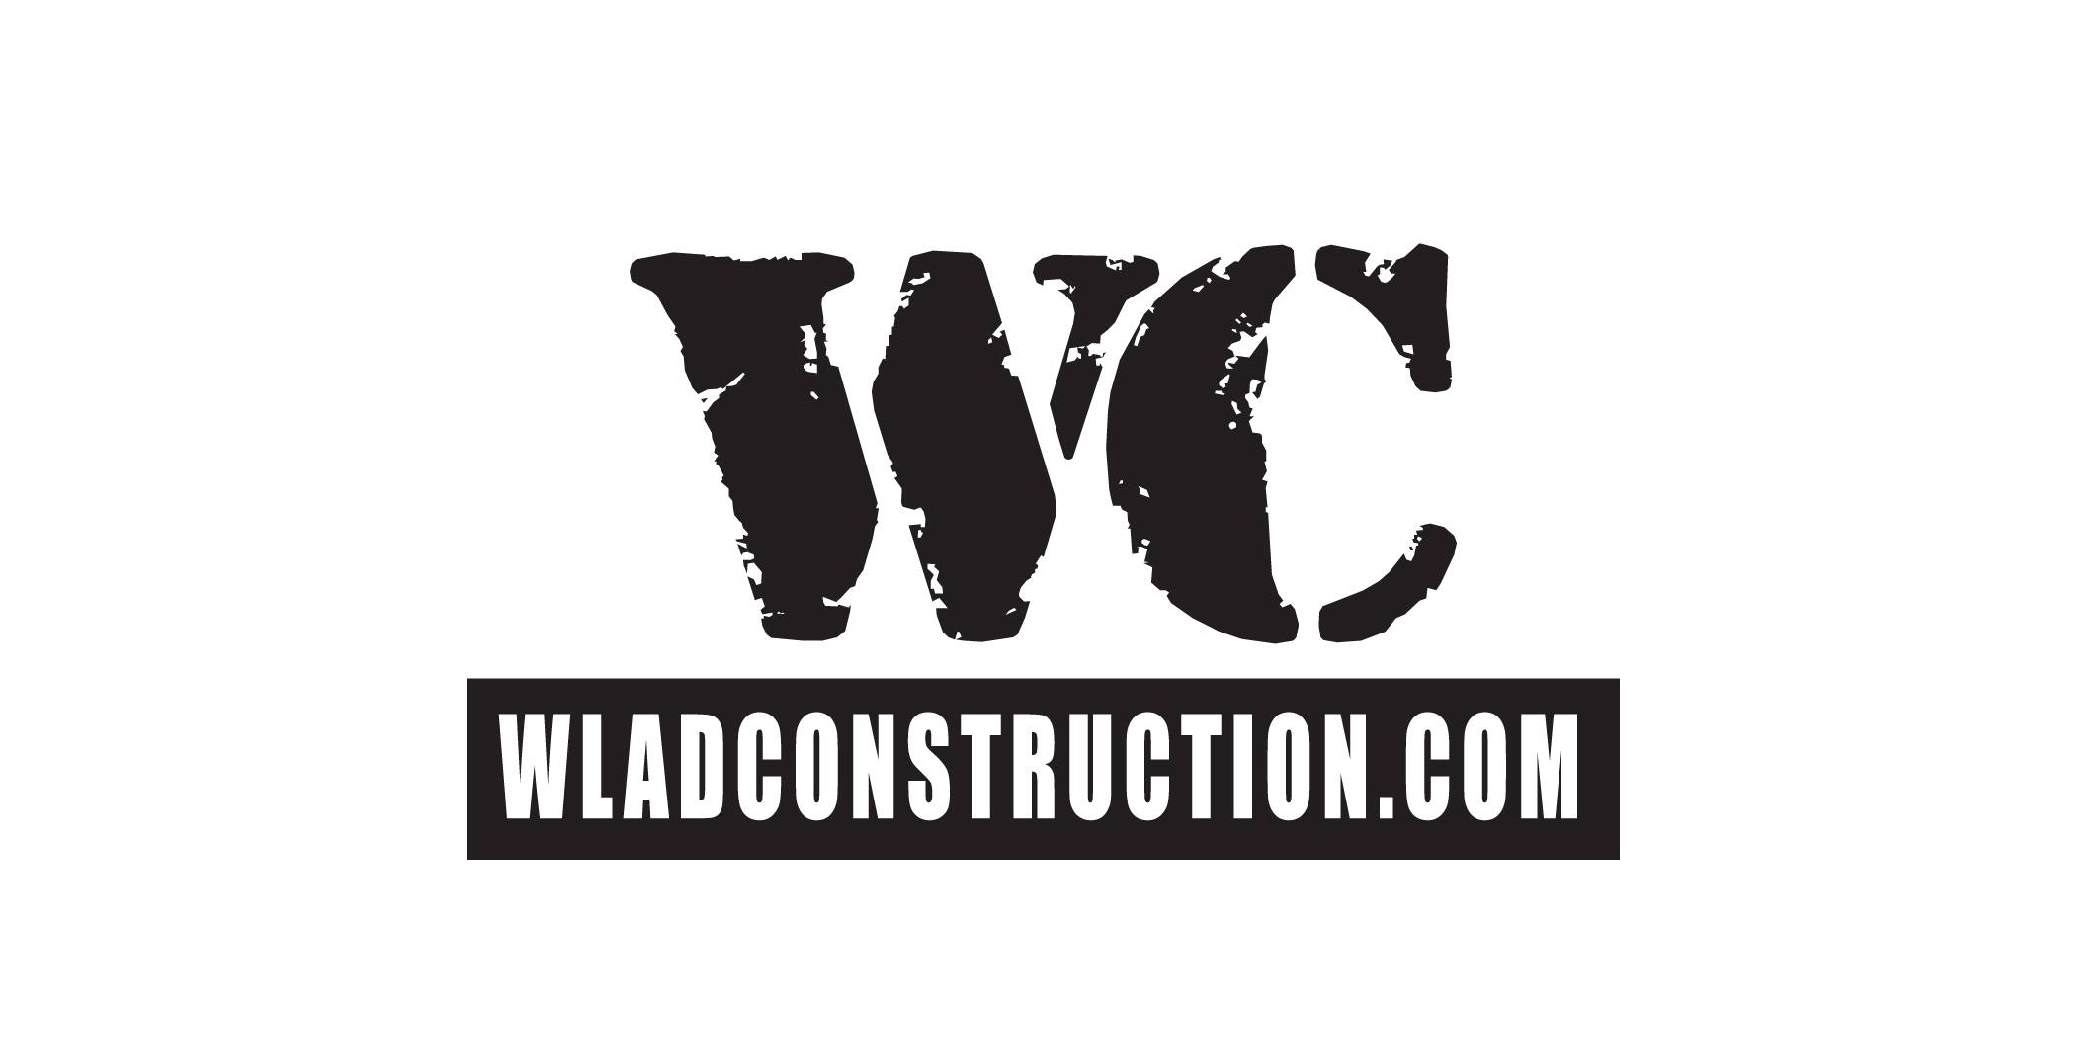 John Wlad & Sons Construction Ltd